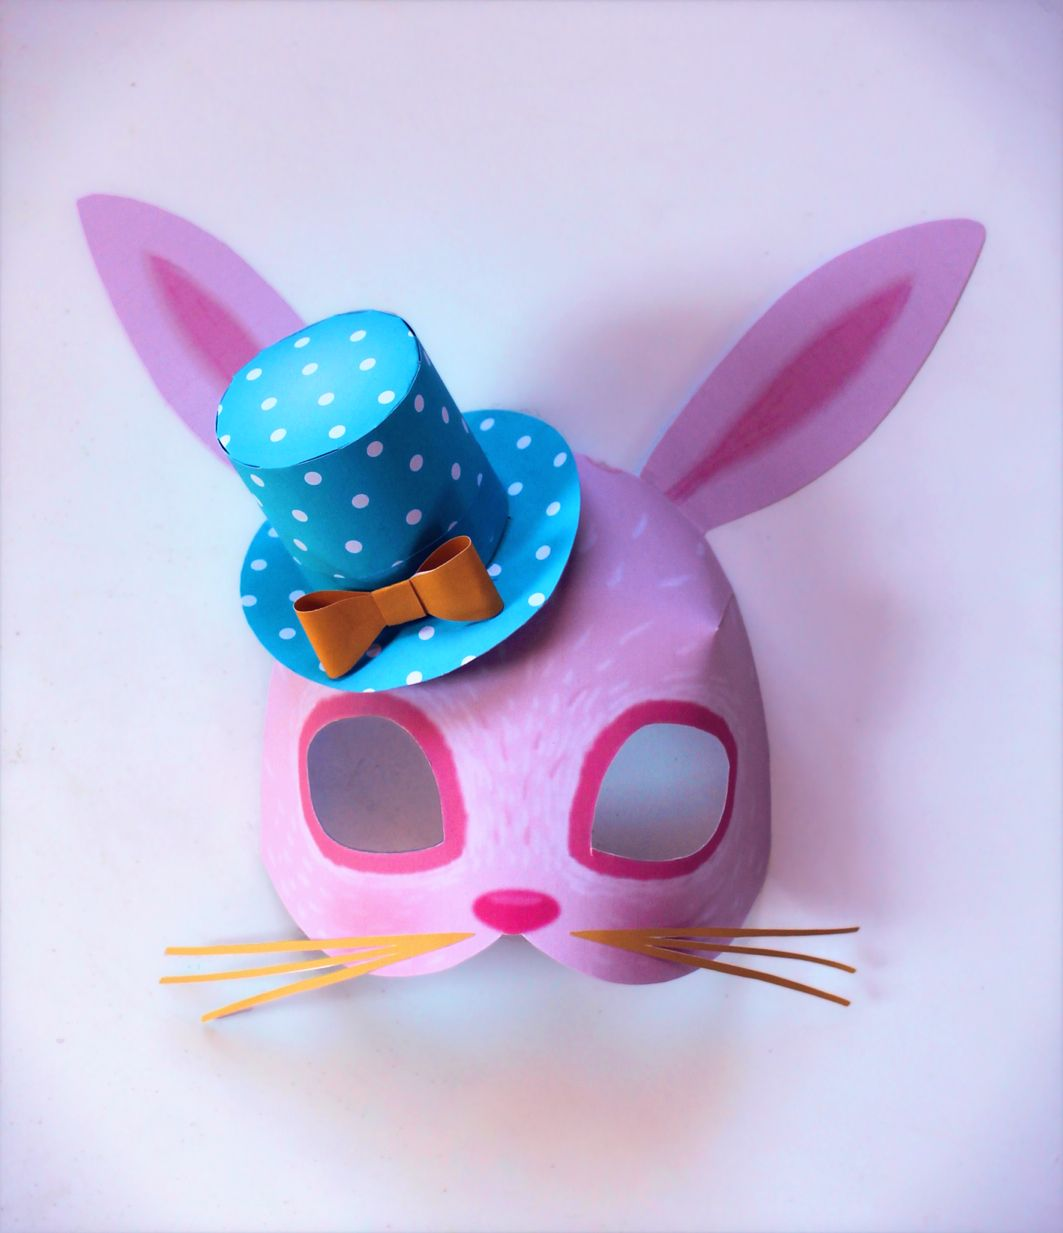 Instant Make Printable Animal Masks Download Mask Templates Now 3d Origami Peacock Diagram Stick Tail D Album Jimena Bunny Love One Of Happythoughts Set Teamed With A Spring Time Happythought Top Hat All Available To Print And Here